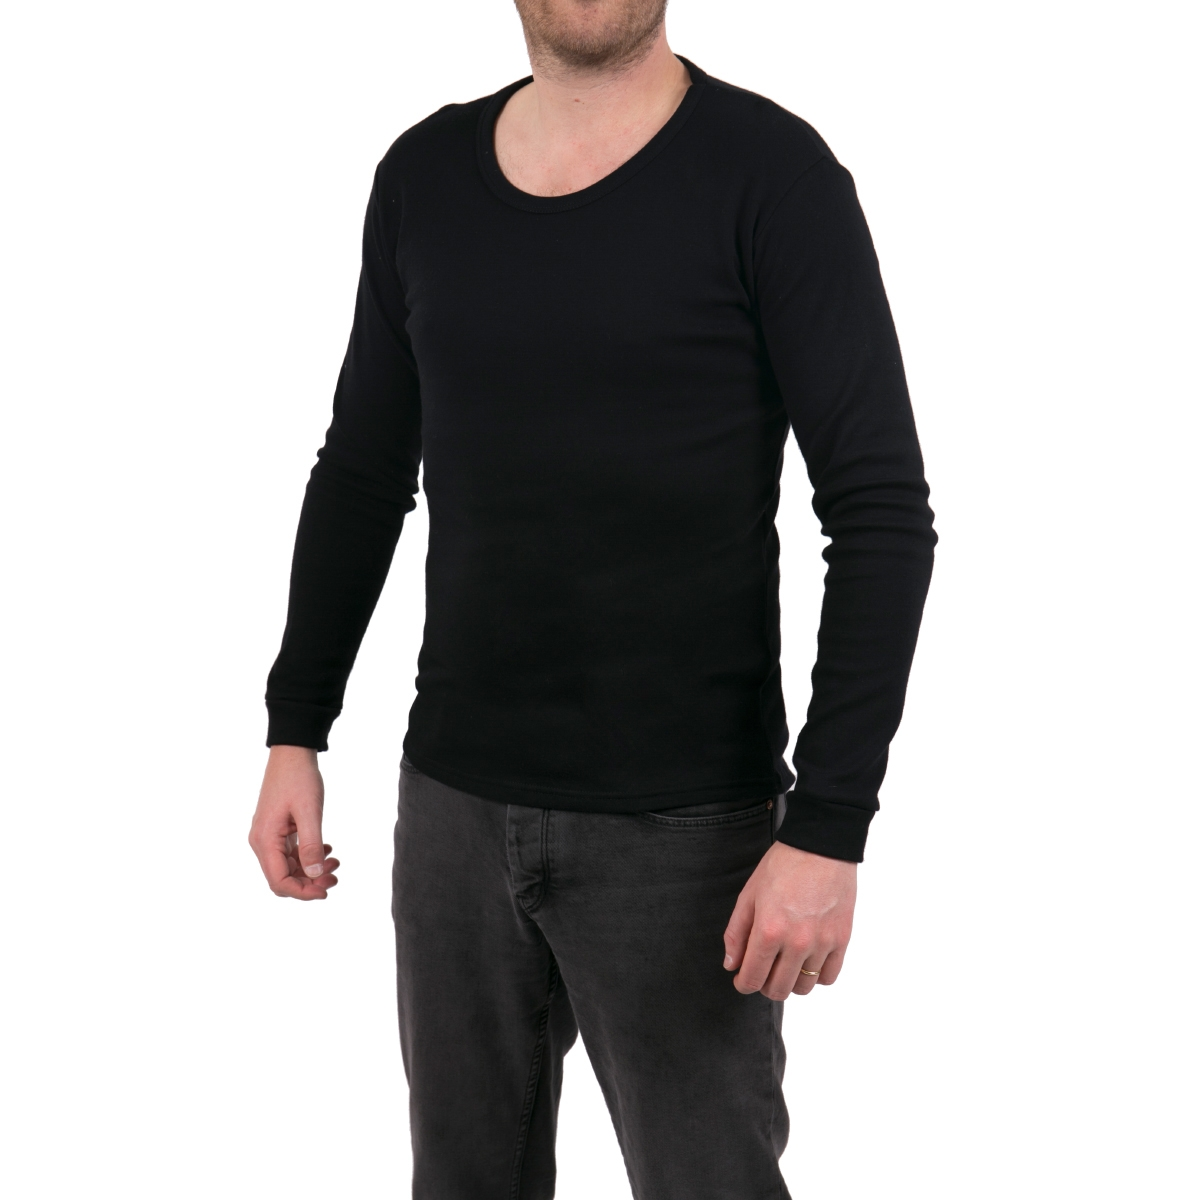 t shirts thermal manches longues homme ebay. Black Bedroom Furniture Sets. Home Design Ideas